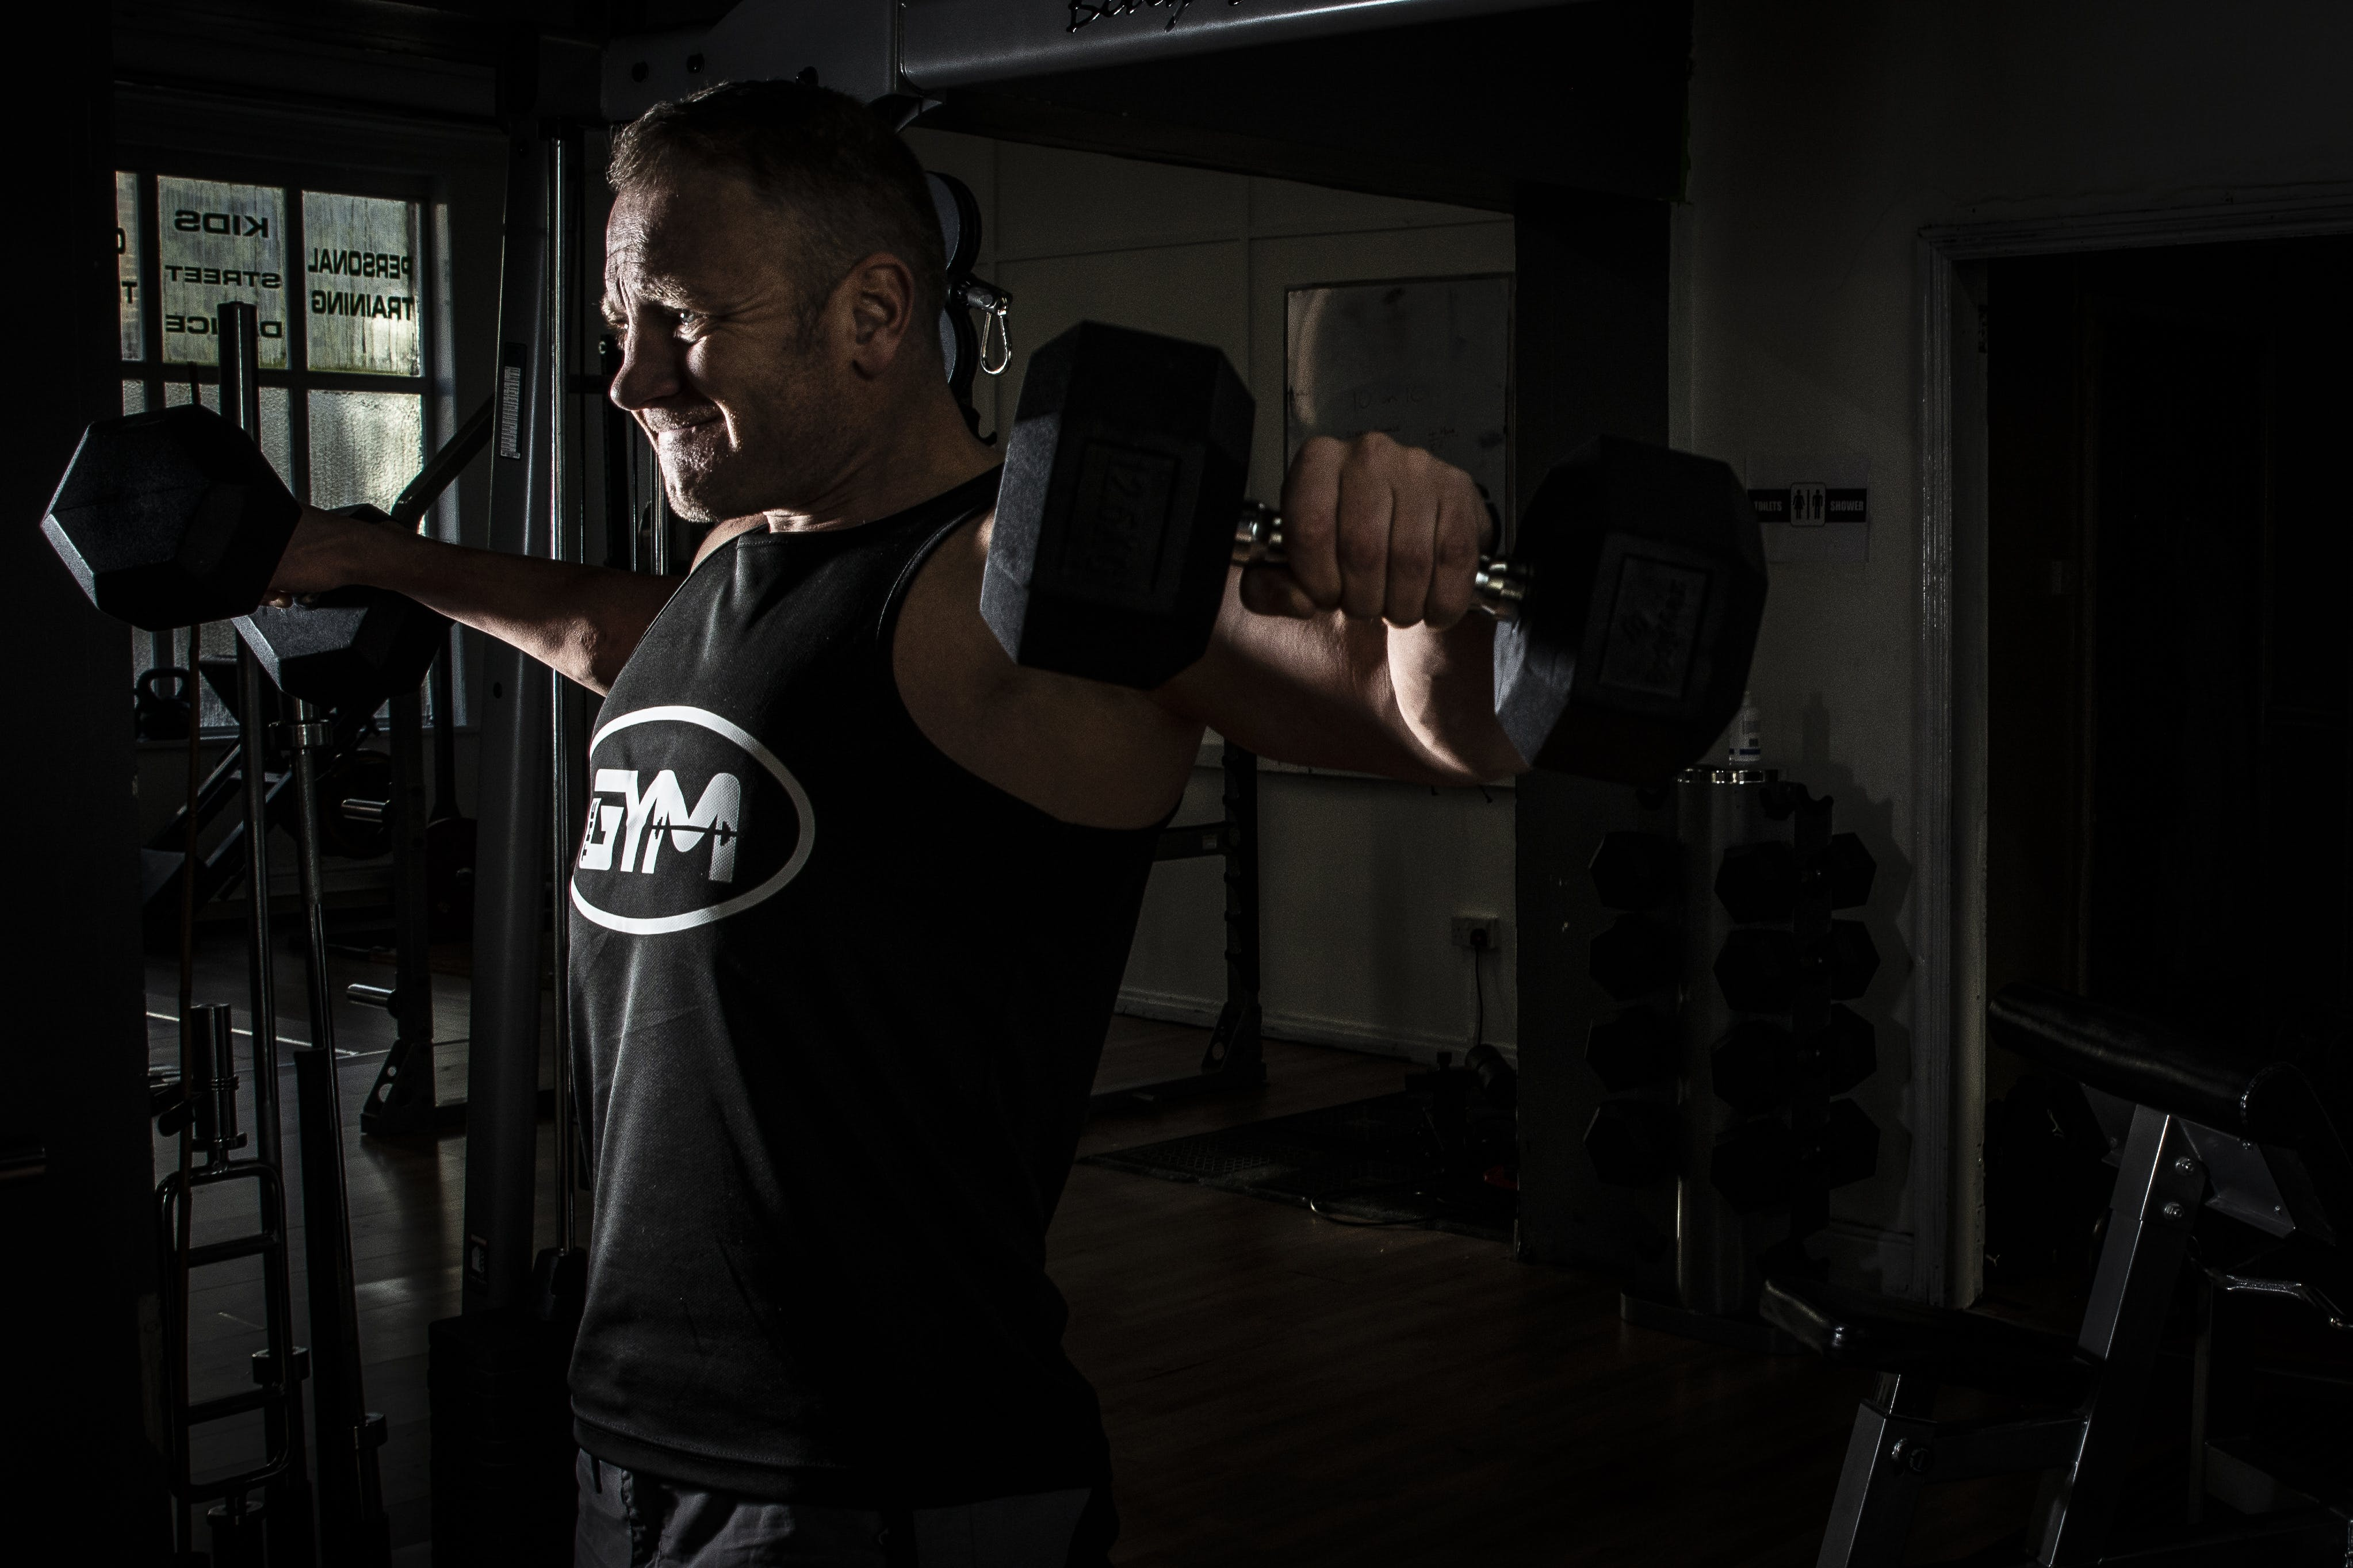 Man Exercising at the Gym With Fixed Weight Dumbbells